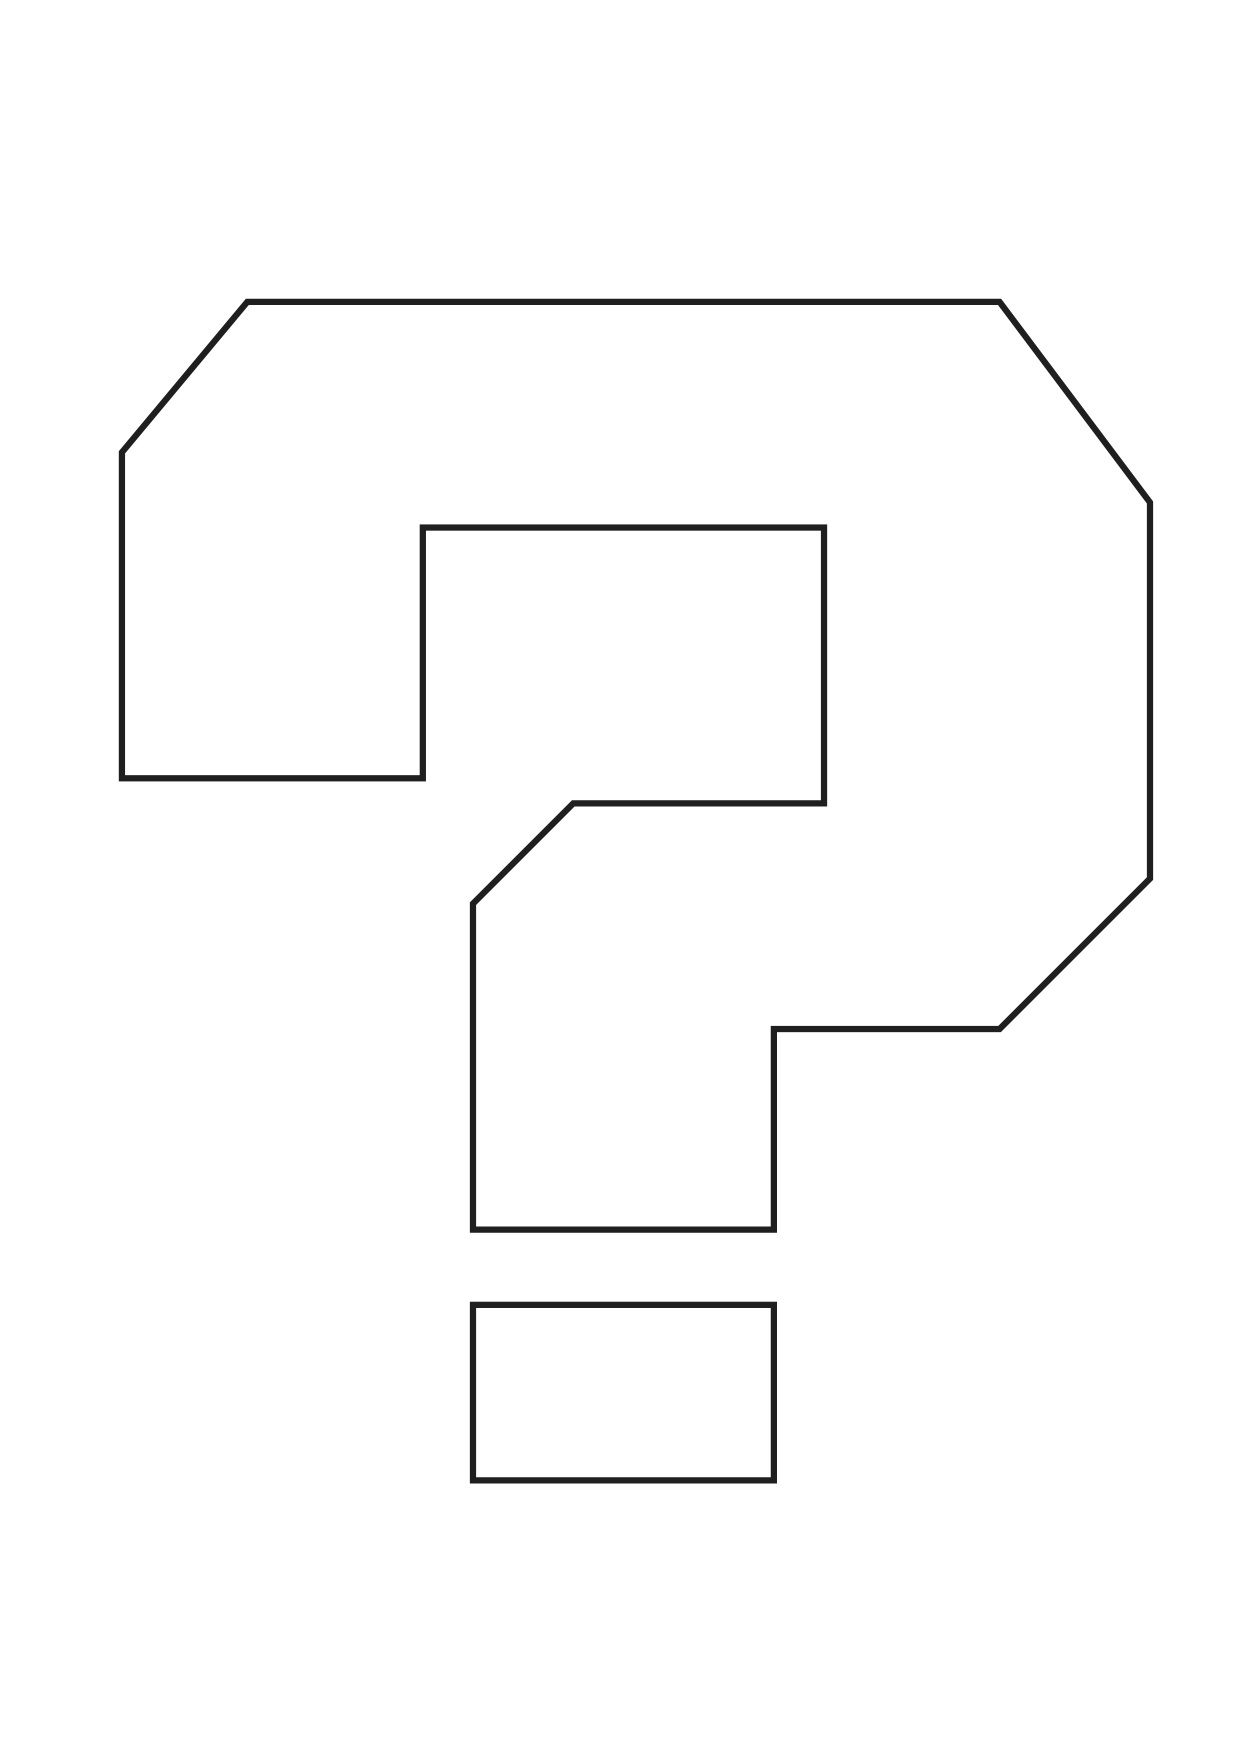 Coloring pages question mark - Mario_questionmark Jpg